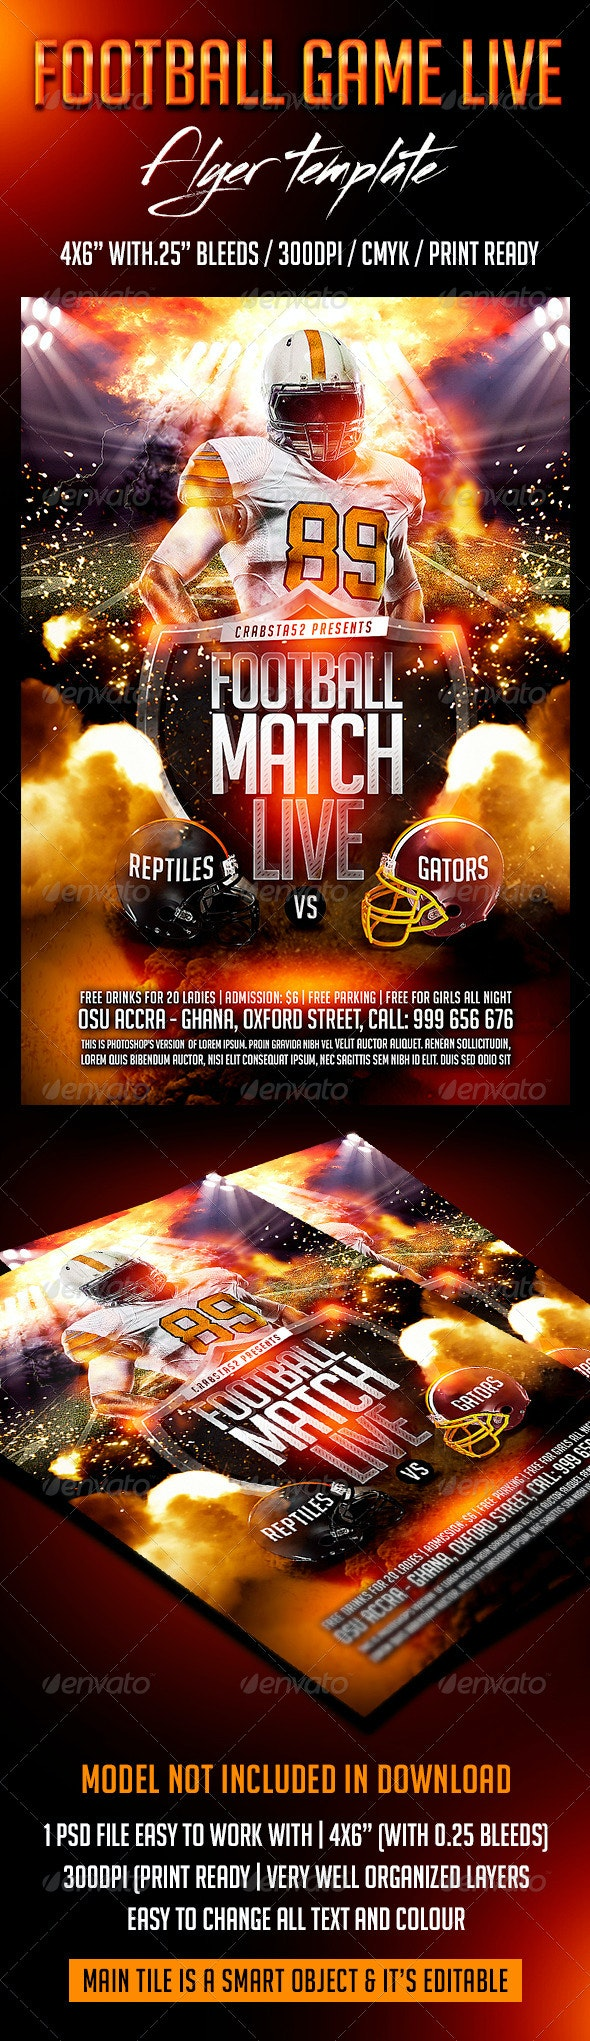 Football Game Live Flyer Template - Sports Events